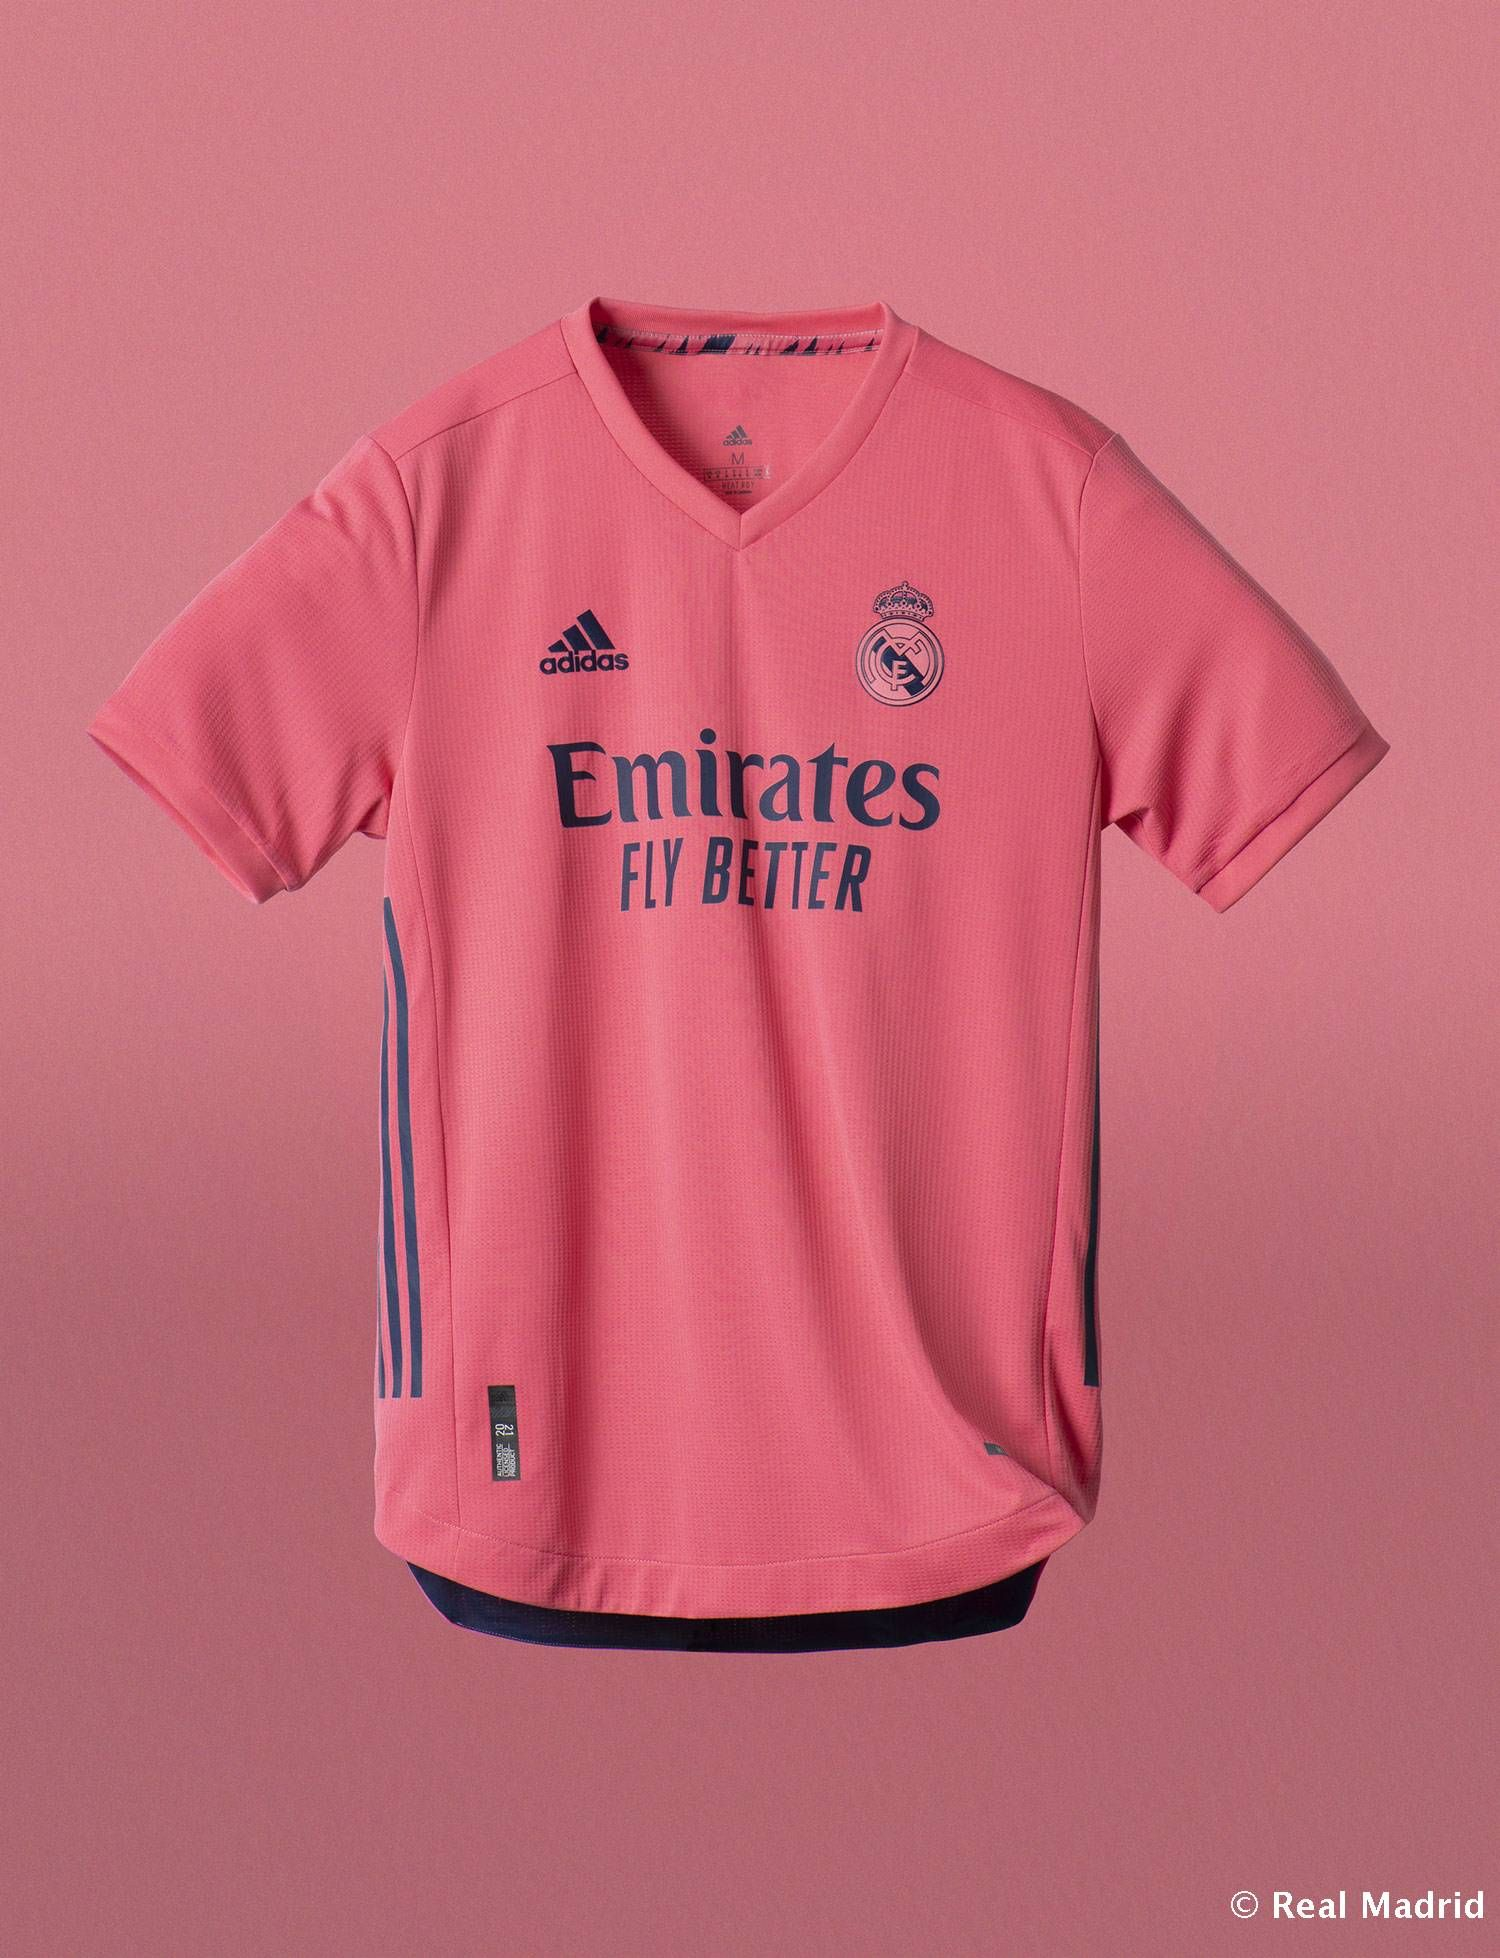 Real Madrid 2020 21 Adidas Home And Away Kits Football Fashion Org In 2020 Famous Shirts World Soccer Shop Real Madrid